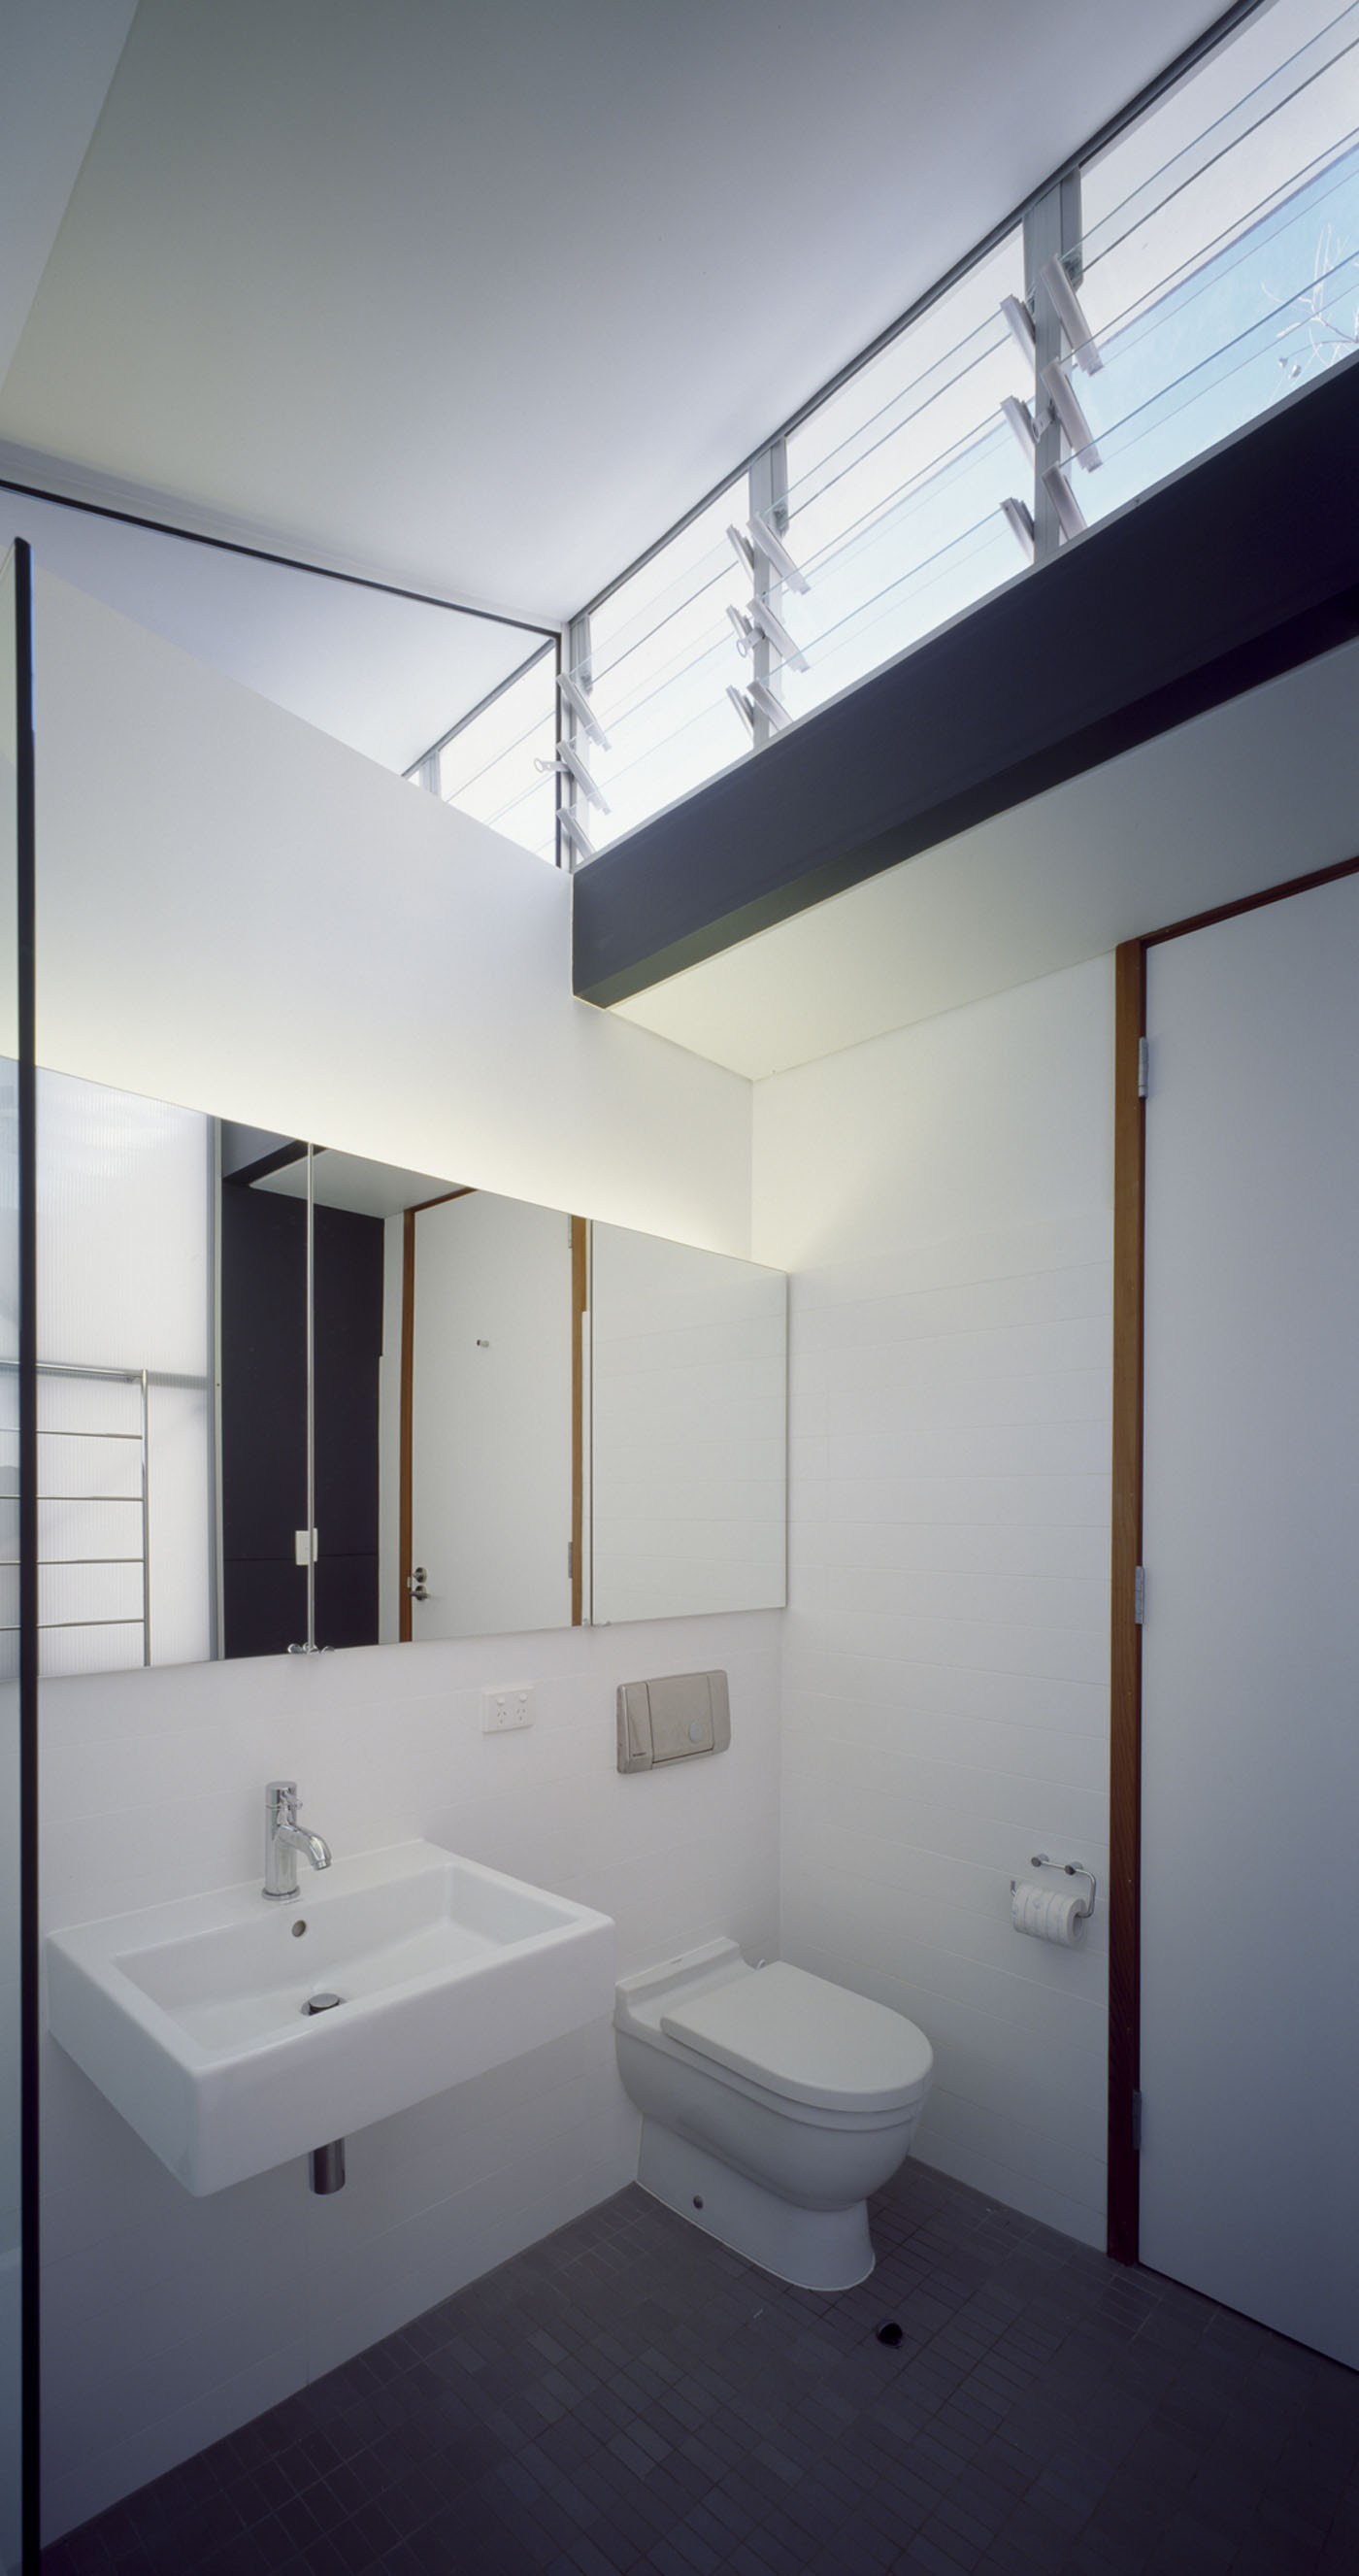 Wave House by Sydney award winning residential architecture firm Sam Crawford Architects. Simple high ceiling bathroom with glass louvers to provide ventilation